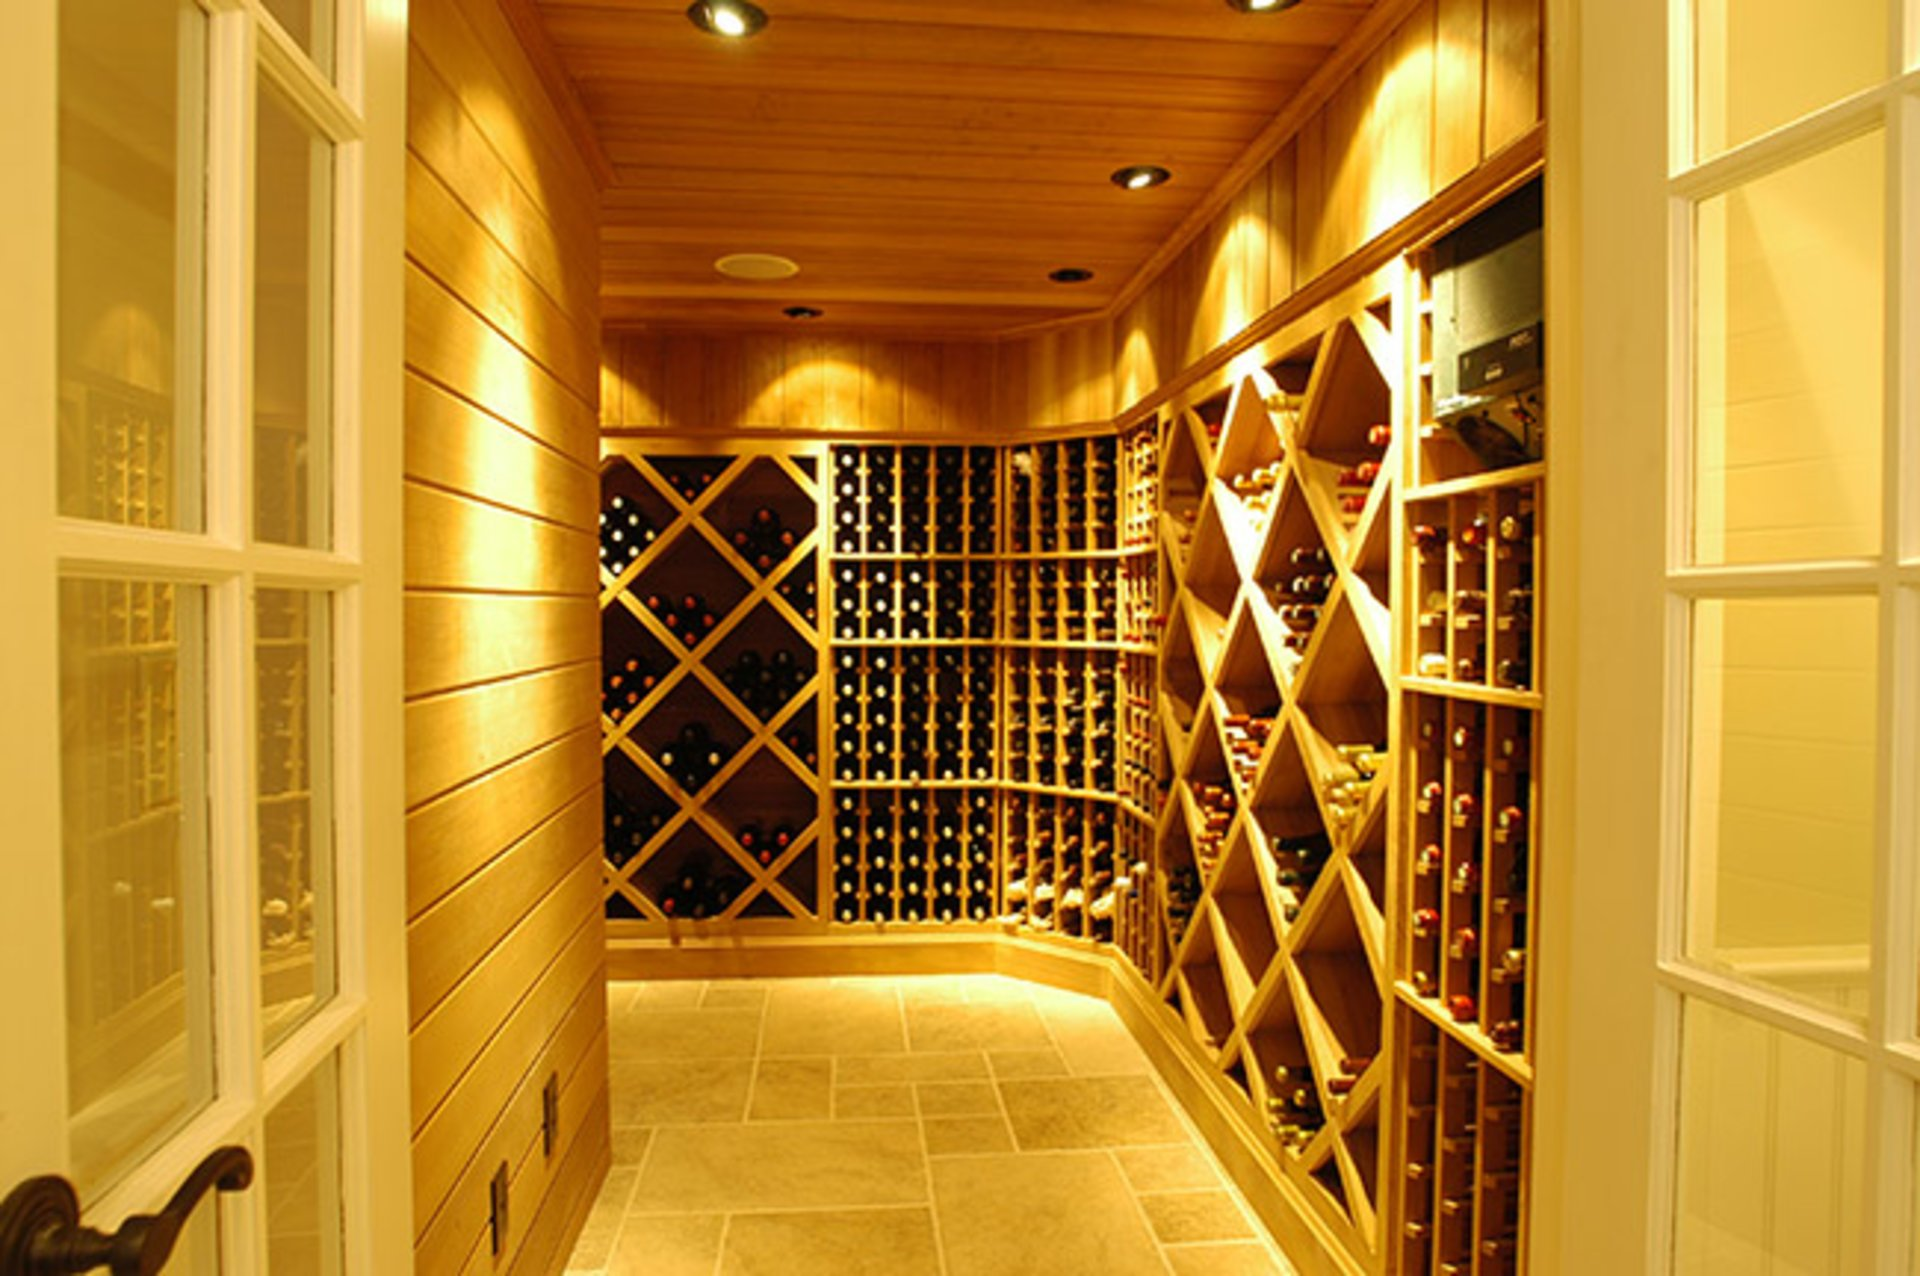 Lighting in the Wine Cellar